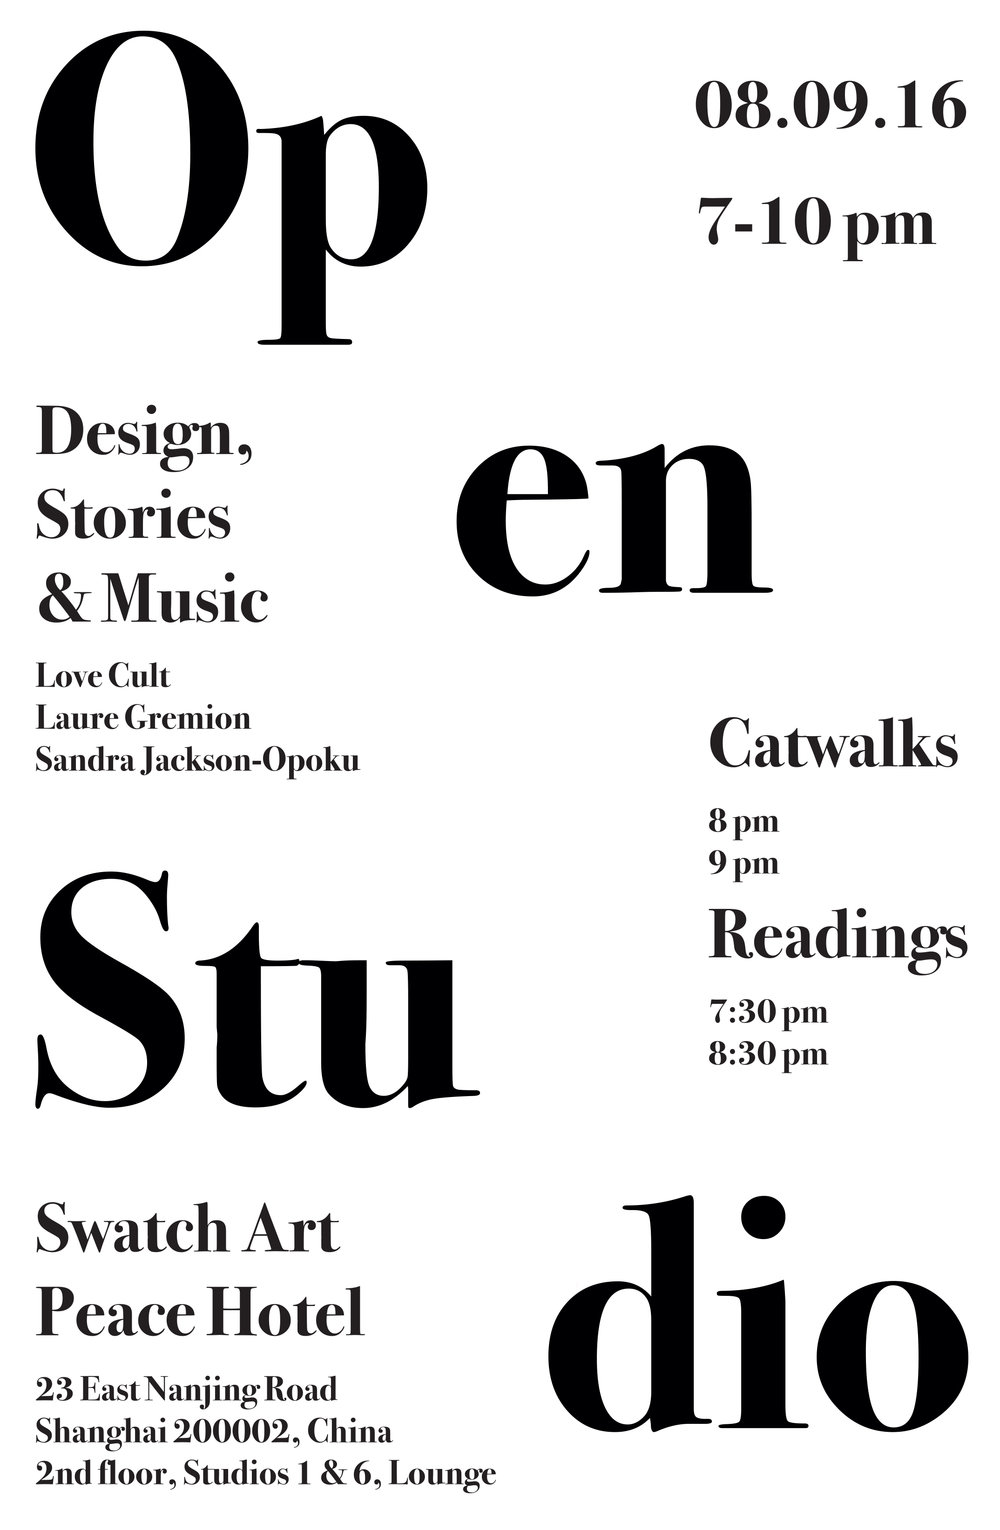 Open Studio Catwalk at Swatch Art Peace Hotel,  Shanghai, China, 08.09.2016